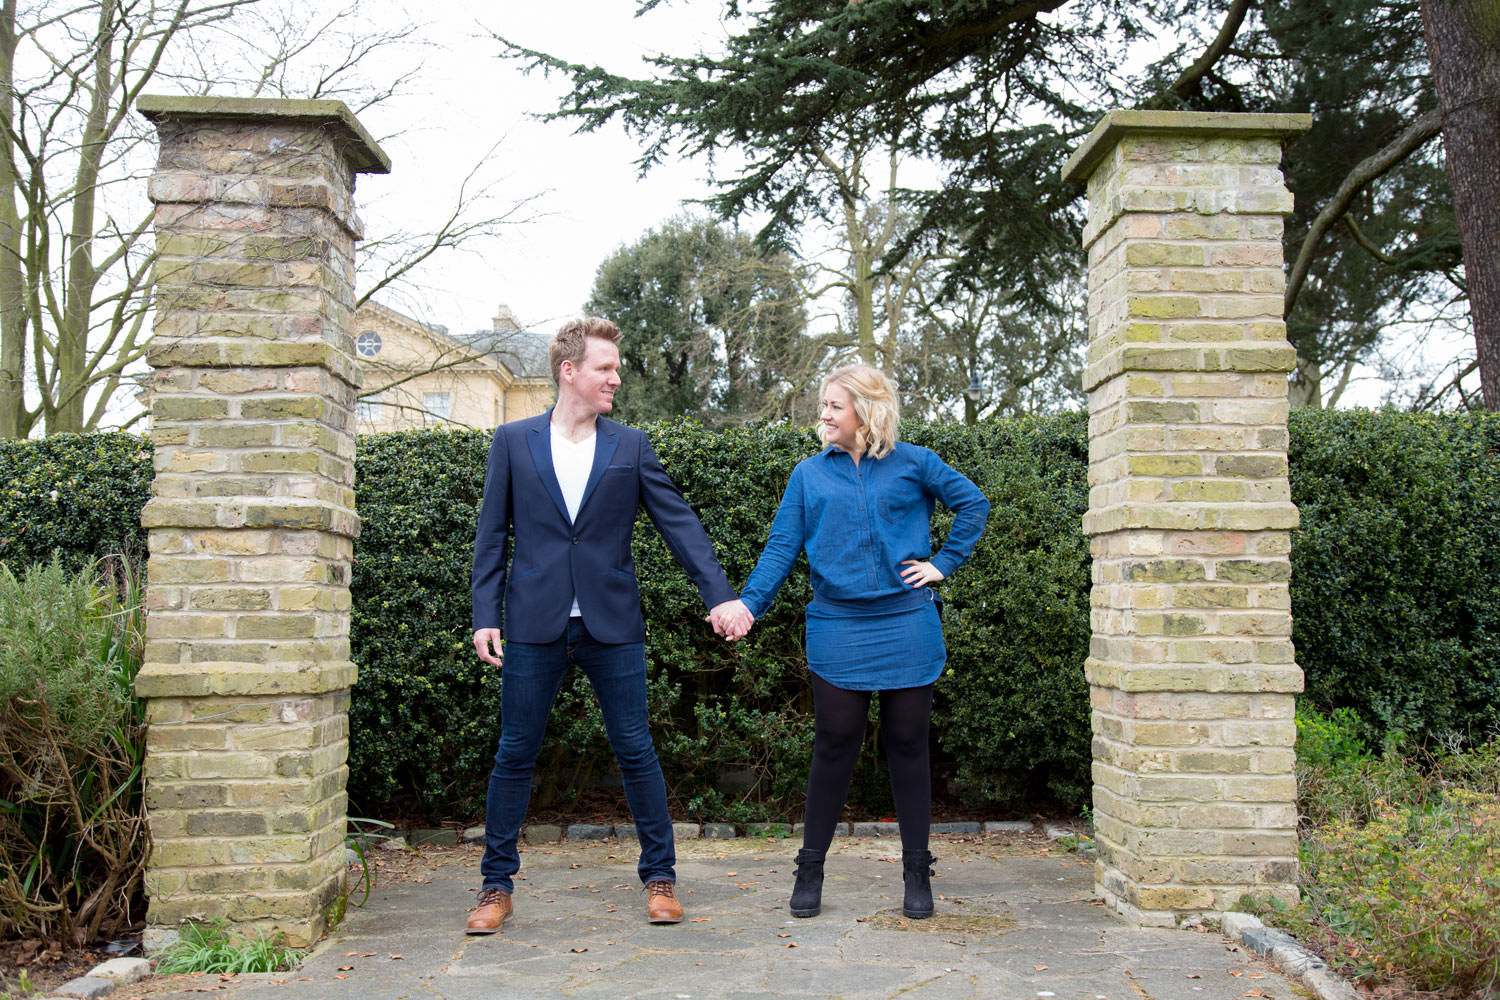 26-Danson Park couples session by Marc Godfree Photography